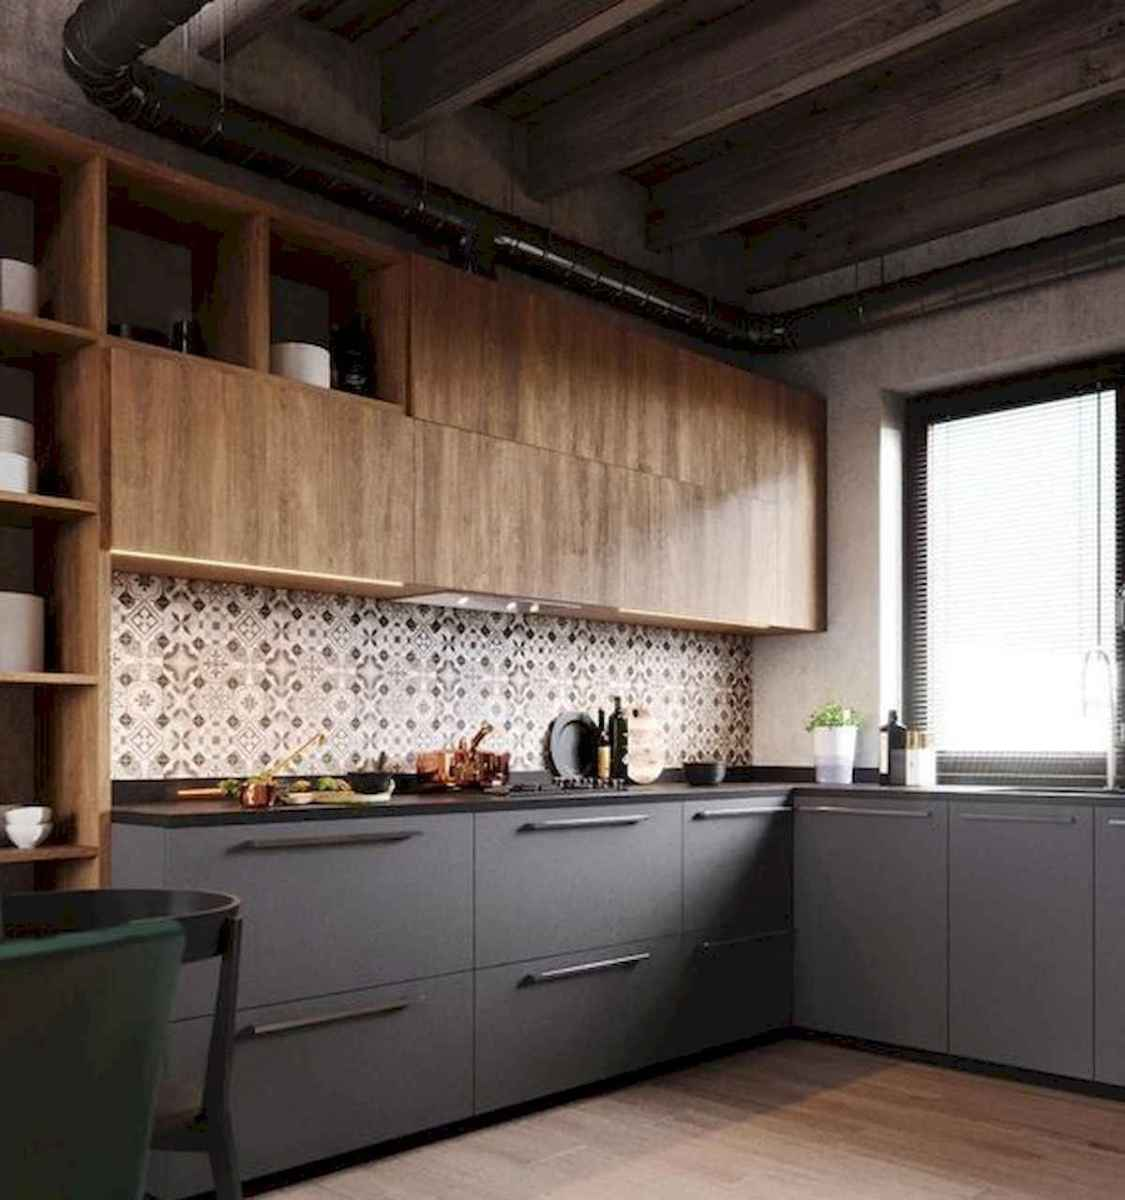 60 Lovely Painted Kitchen Cabinets Two Tone Design Ideas (15)